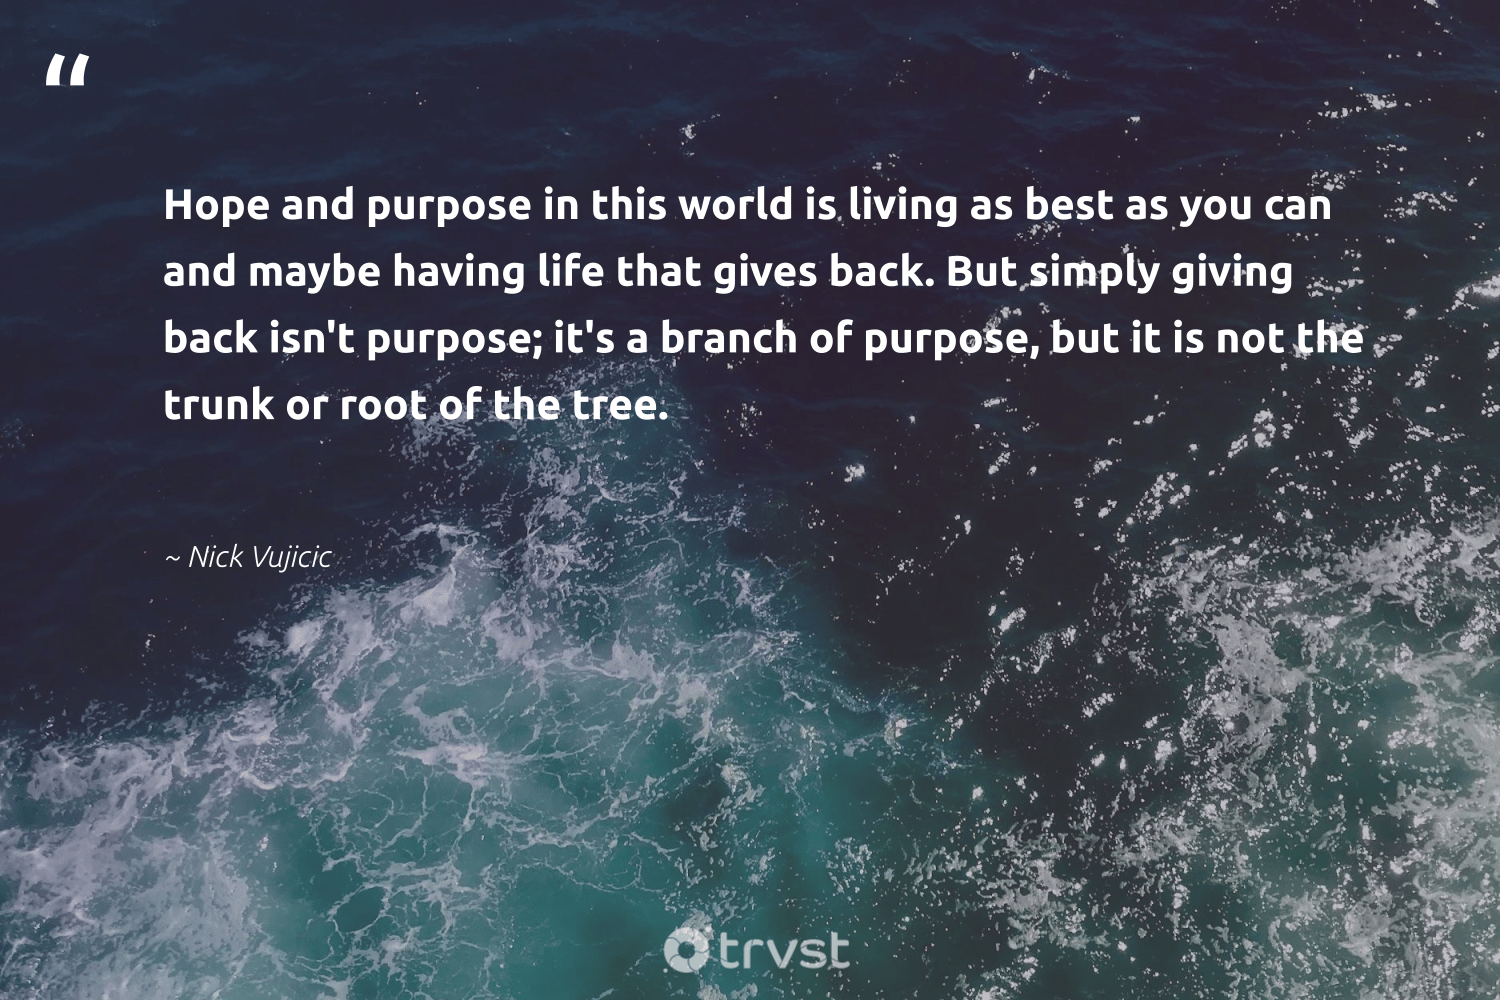 """""""Hope and purpose in this world is living as best as you can and maybe having life that gives back. But simply giving back isn't purpose; it's a branch of purpose, but it is not the trunk or root of the tree.""""  - Nick Vujicic #trvst #quotes #givingback #hope #purpose #dogood #findingpupose #togetherwecan #changemakers #planetearthfirst #socialgood #findpurpose"""